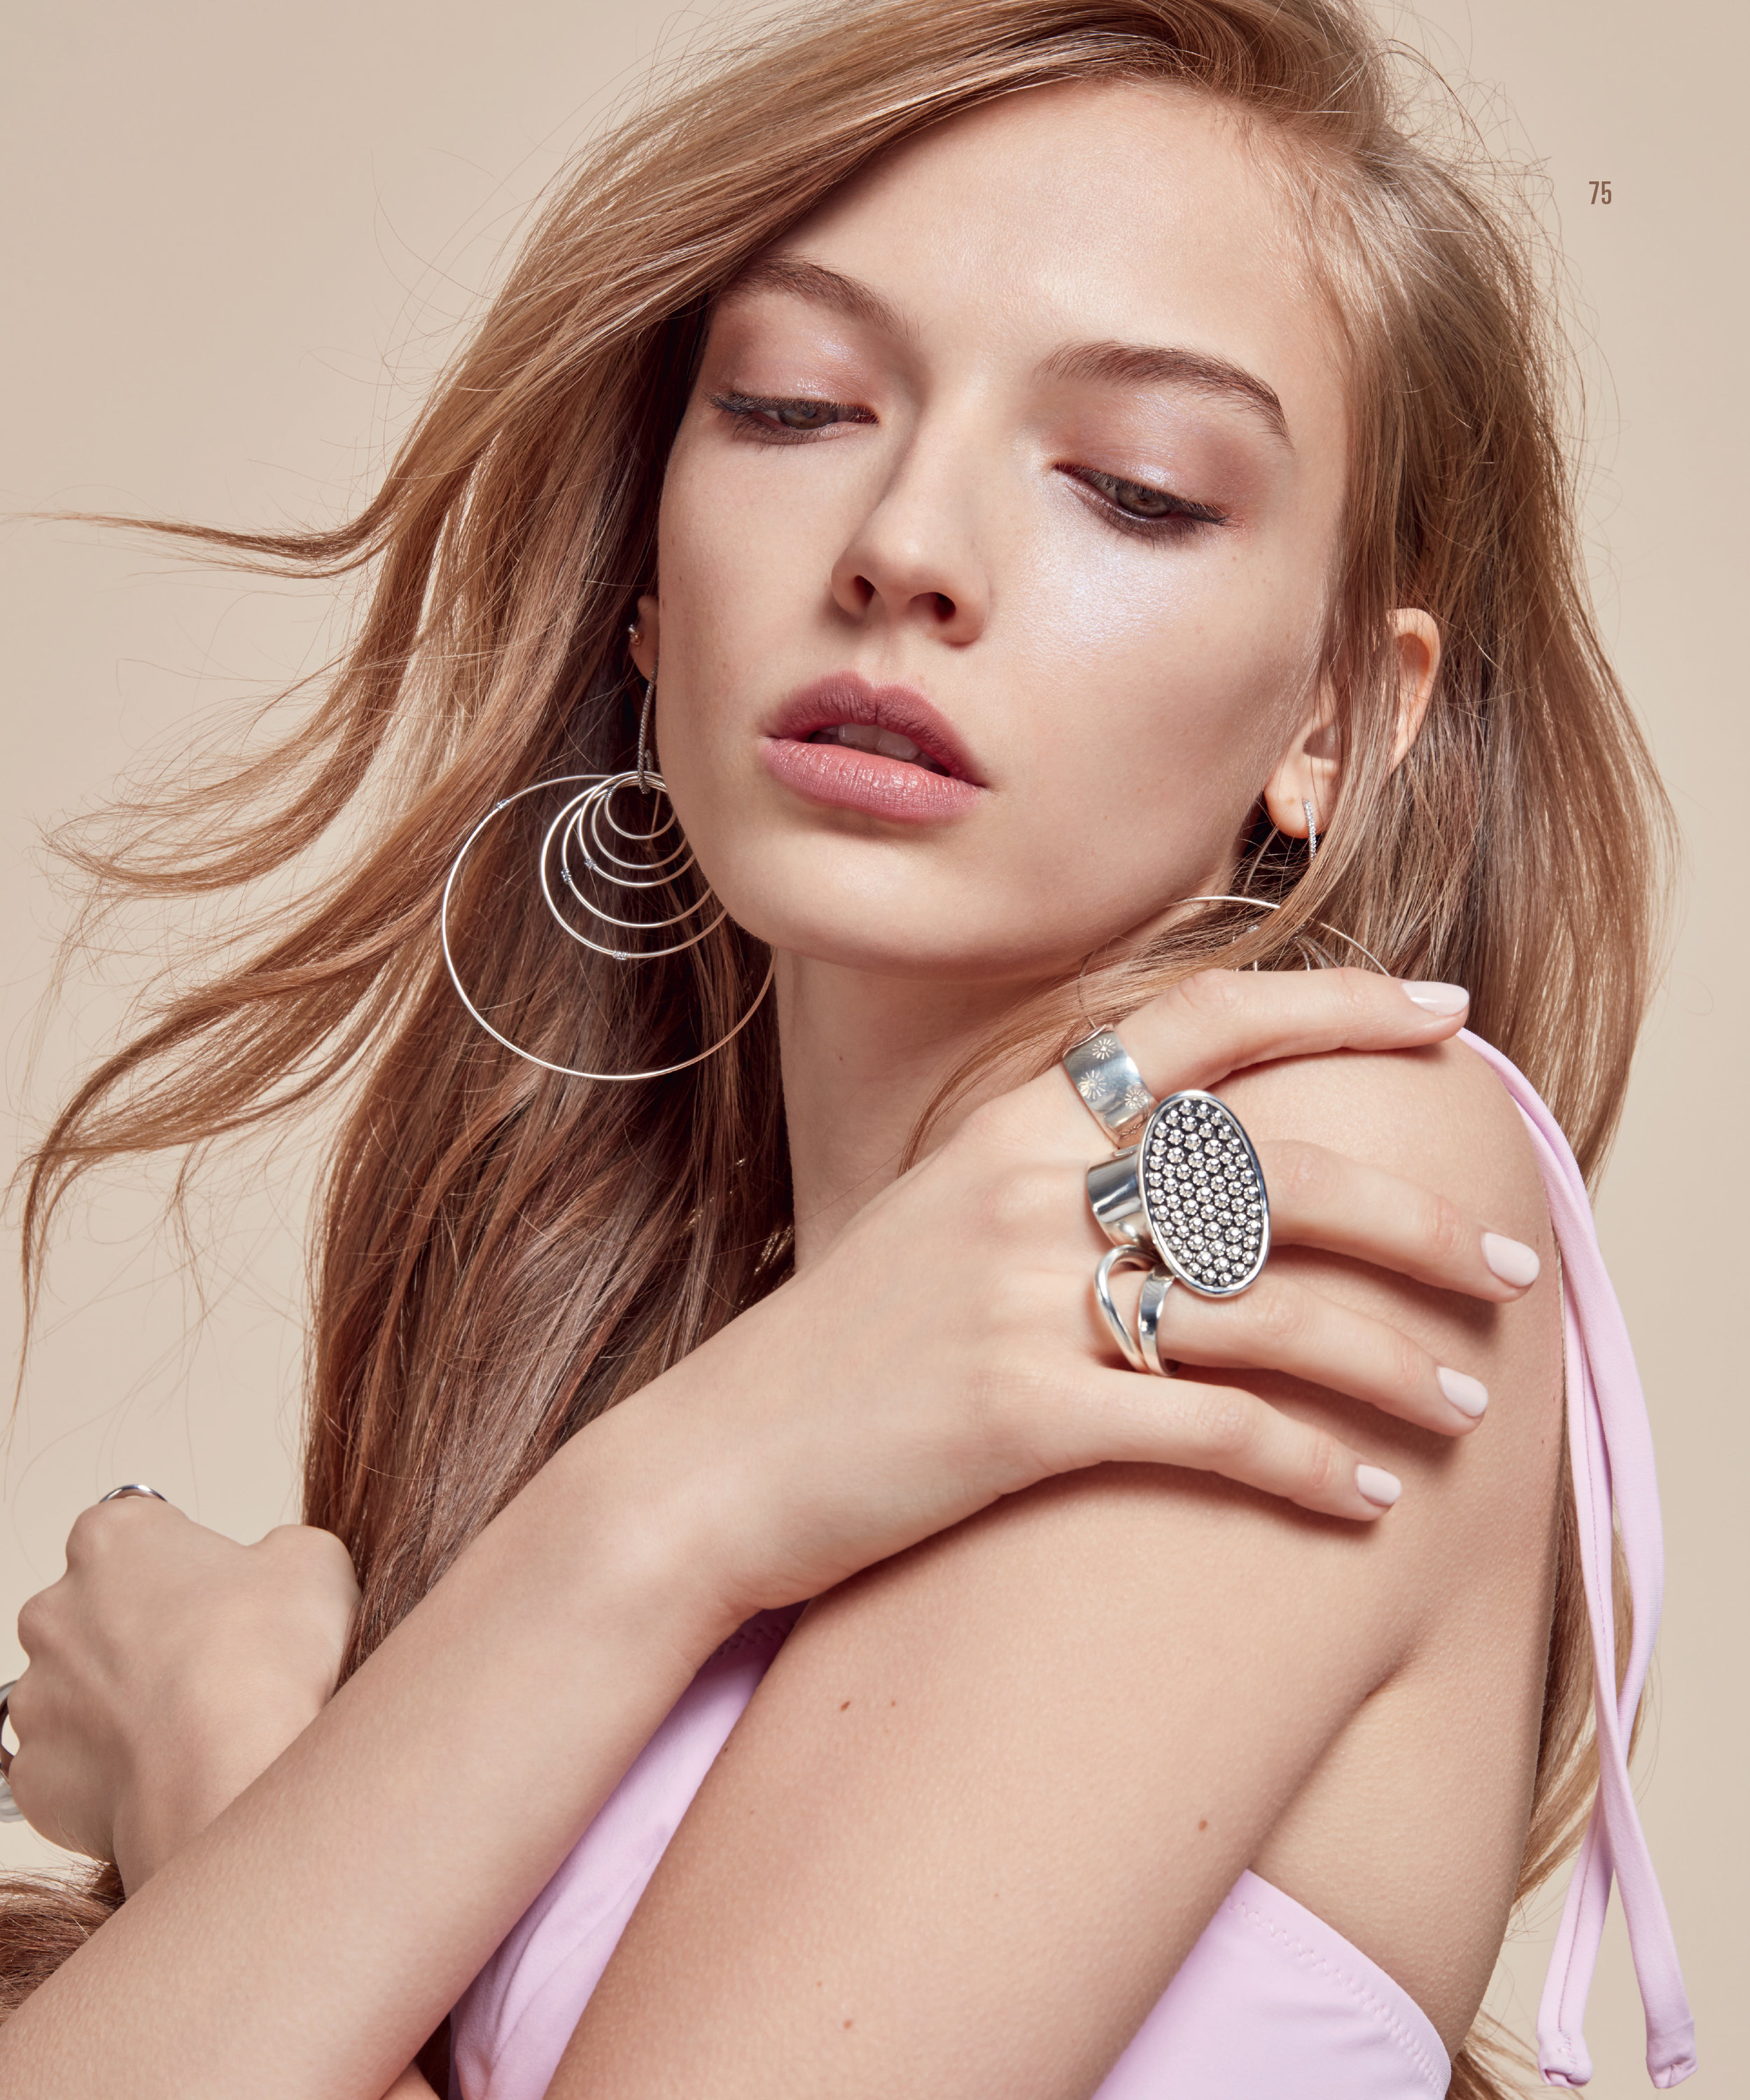 Simon Alcantara   AquaLuna earrings   in the March-April 2018 Issue of JCK. Photographed by Jean -Phillipe Malaval. Stylist: Maggie Mann, Jewelry Editor: Rima Suqi.